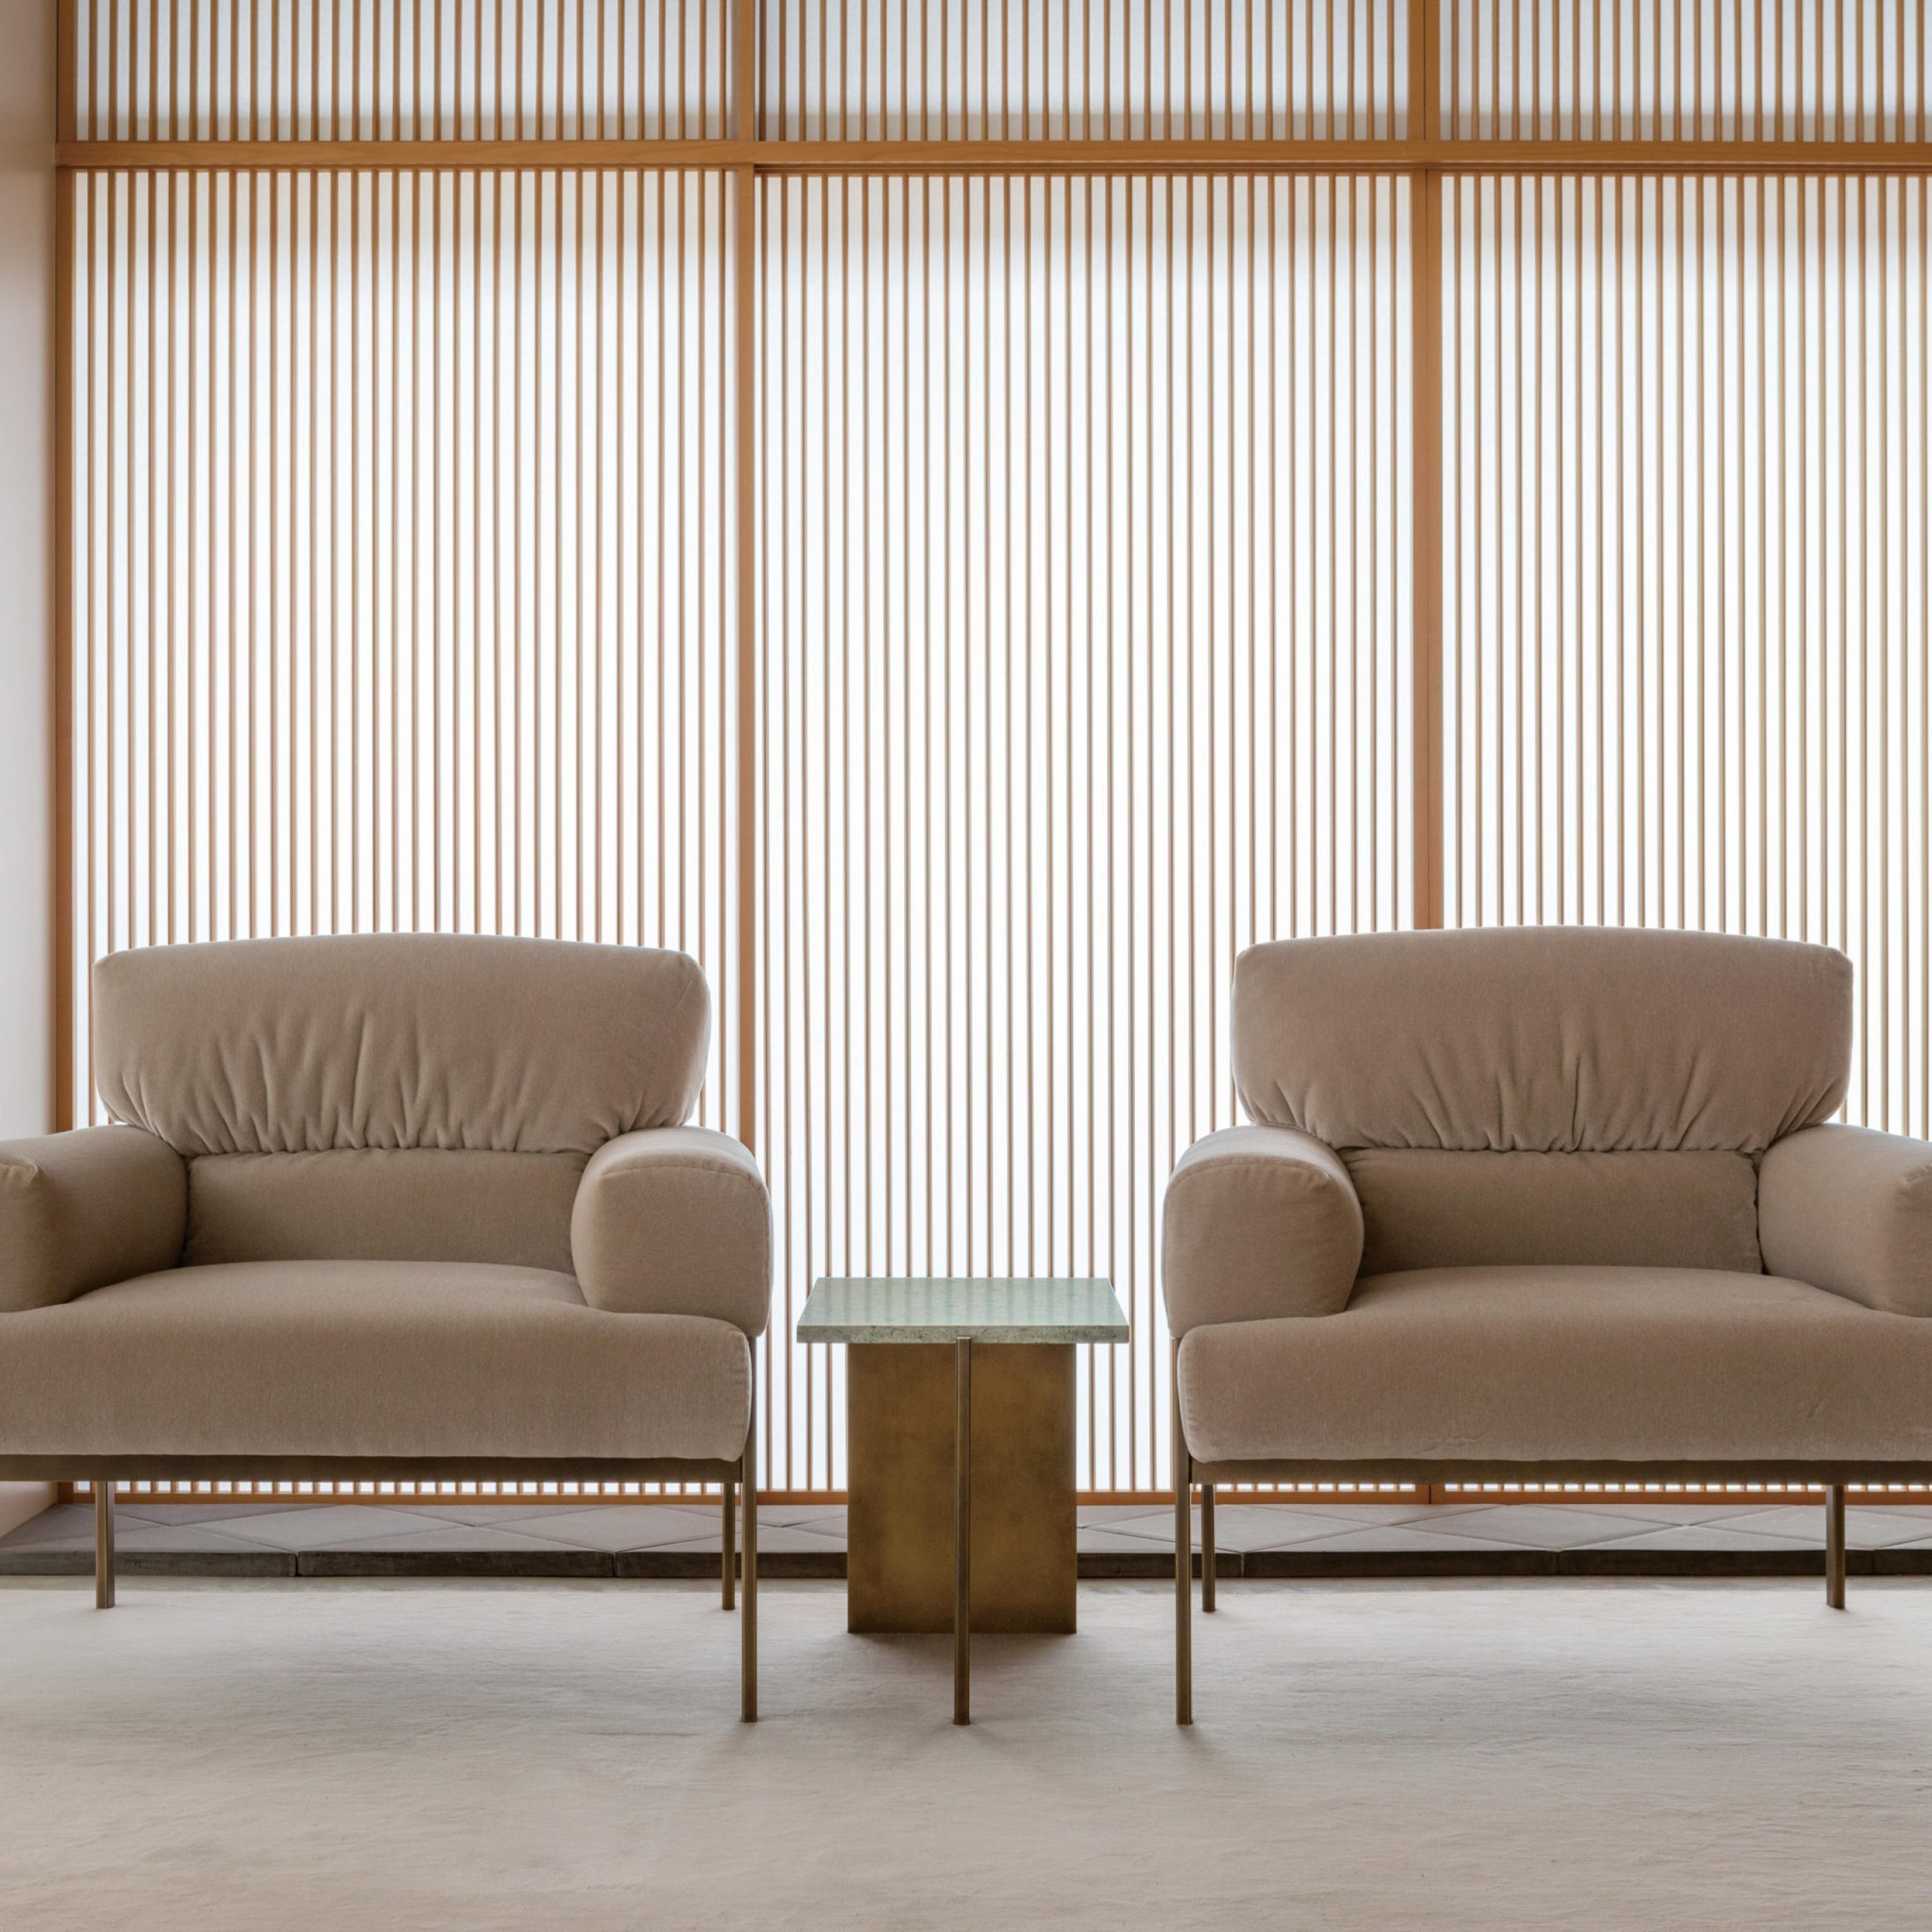 Architonic Regarding Most Up To Date Suki Armchairs (View 9 of 20)